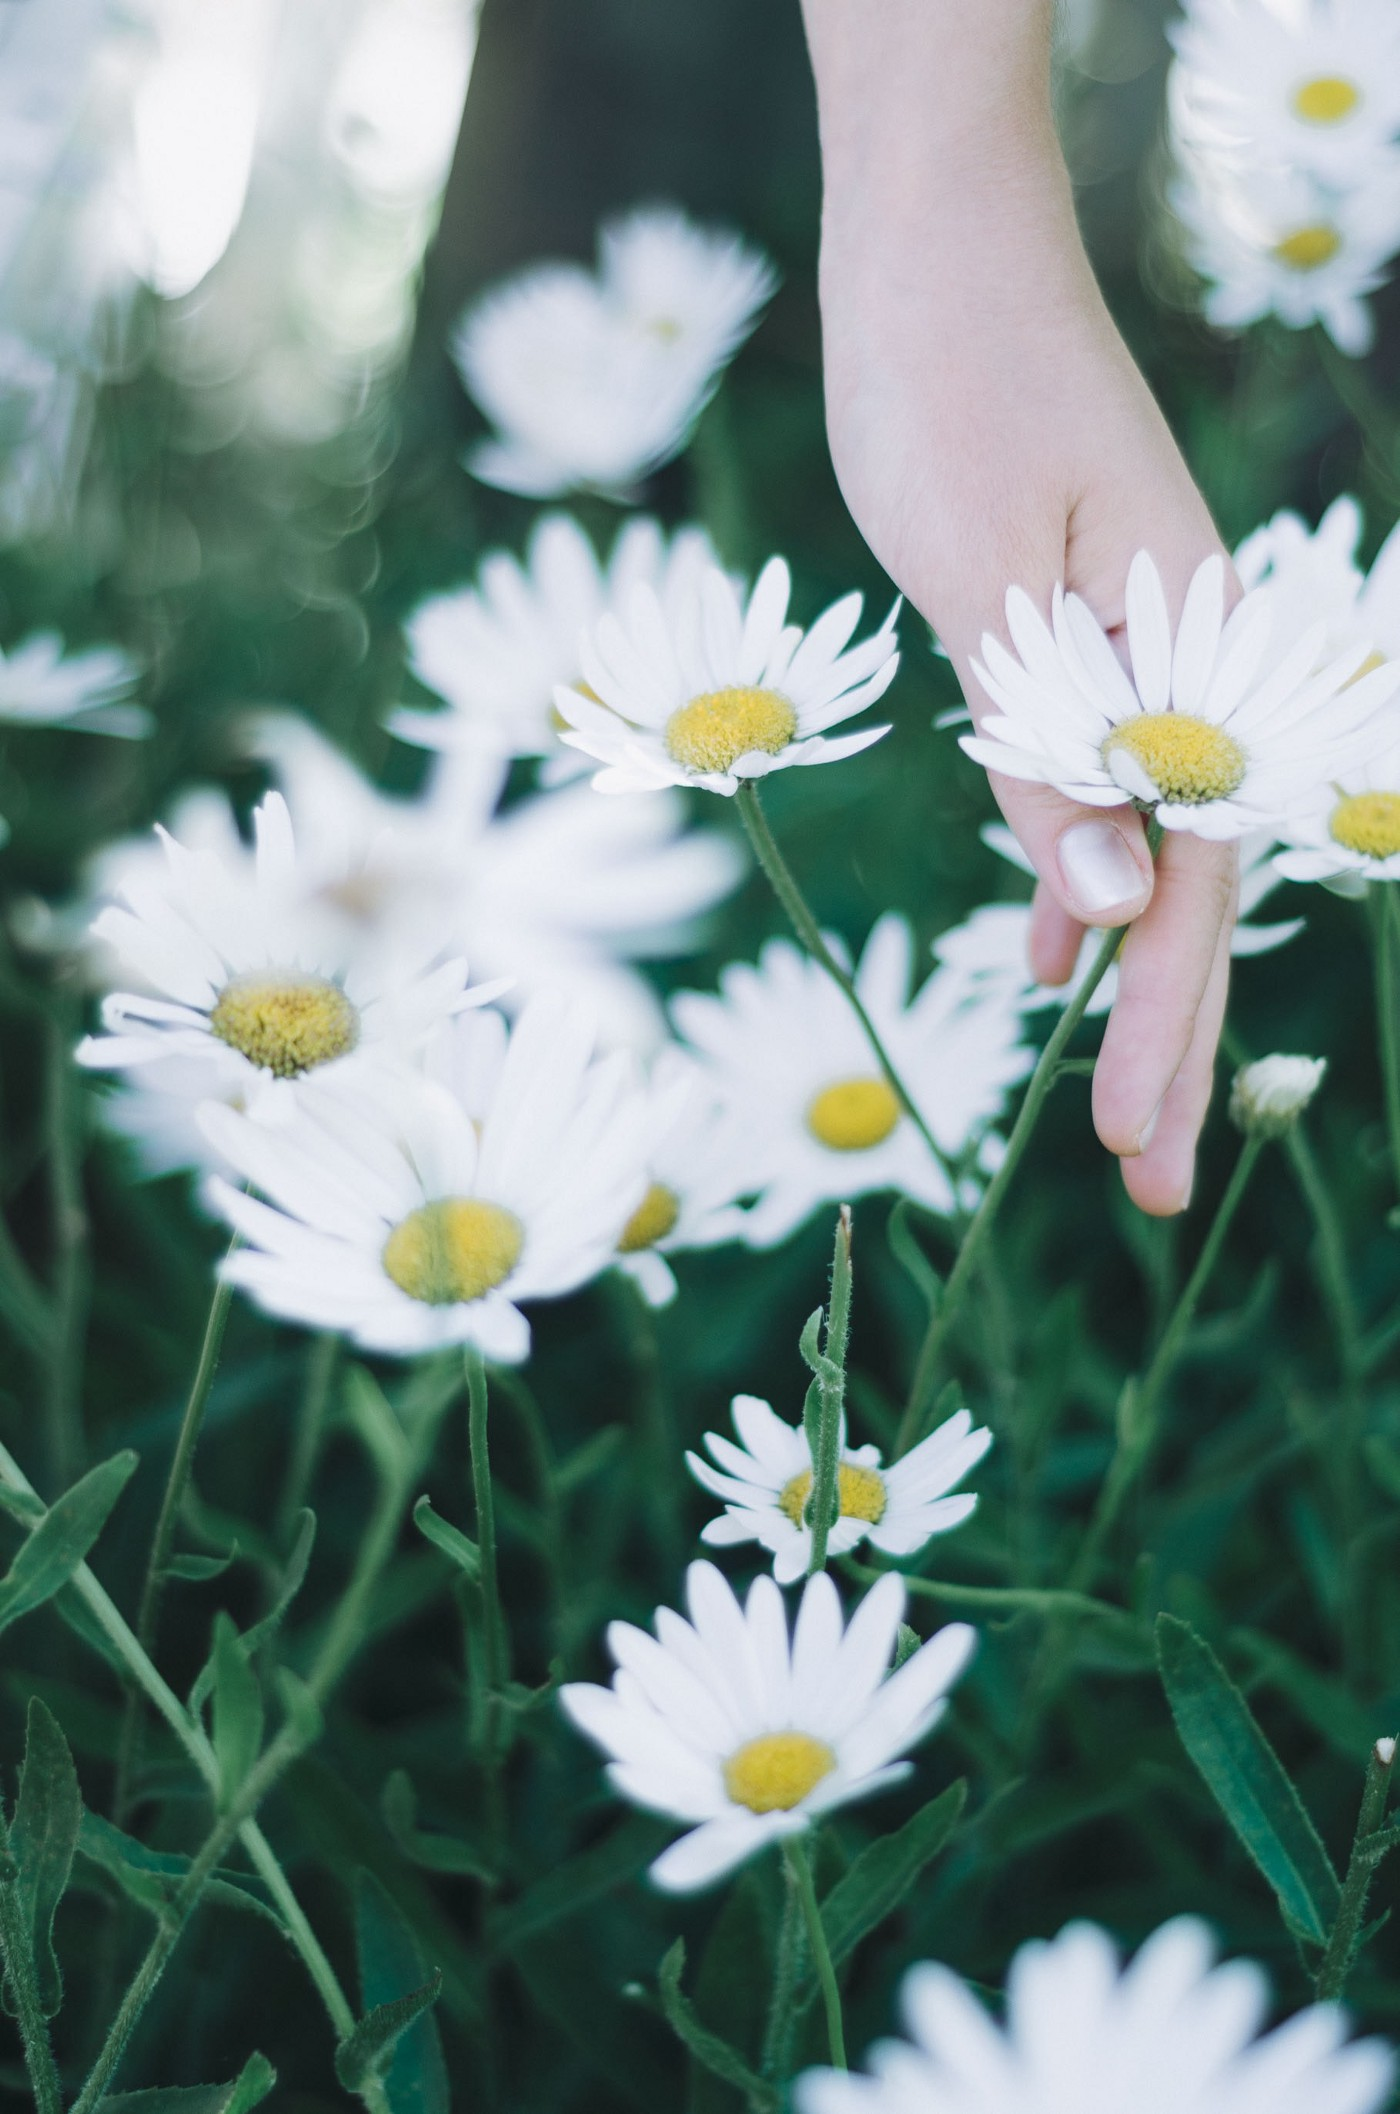 A woman's hand picking a white daisy.